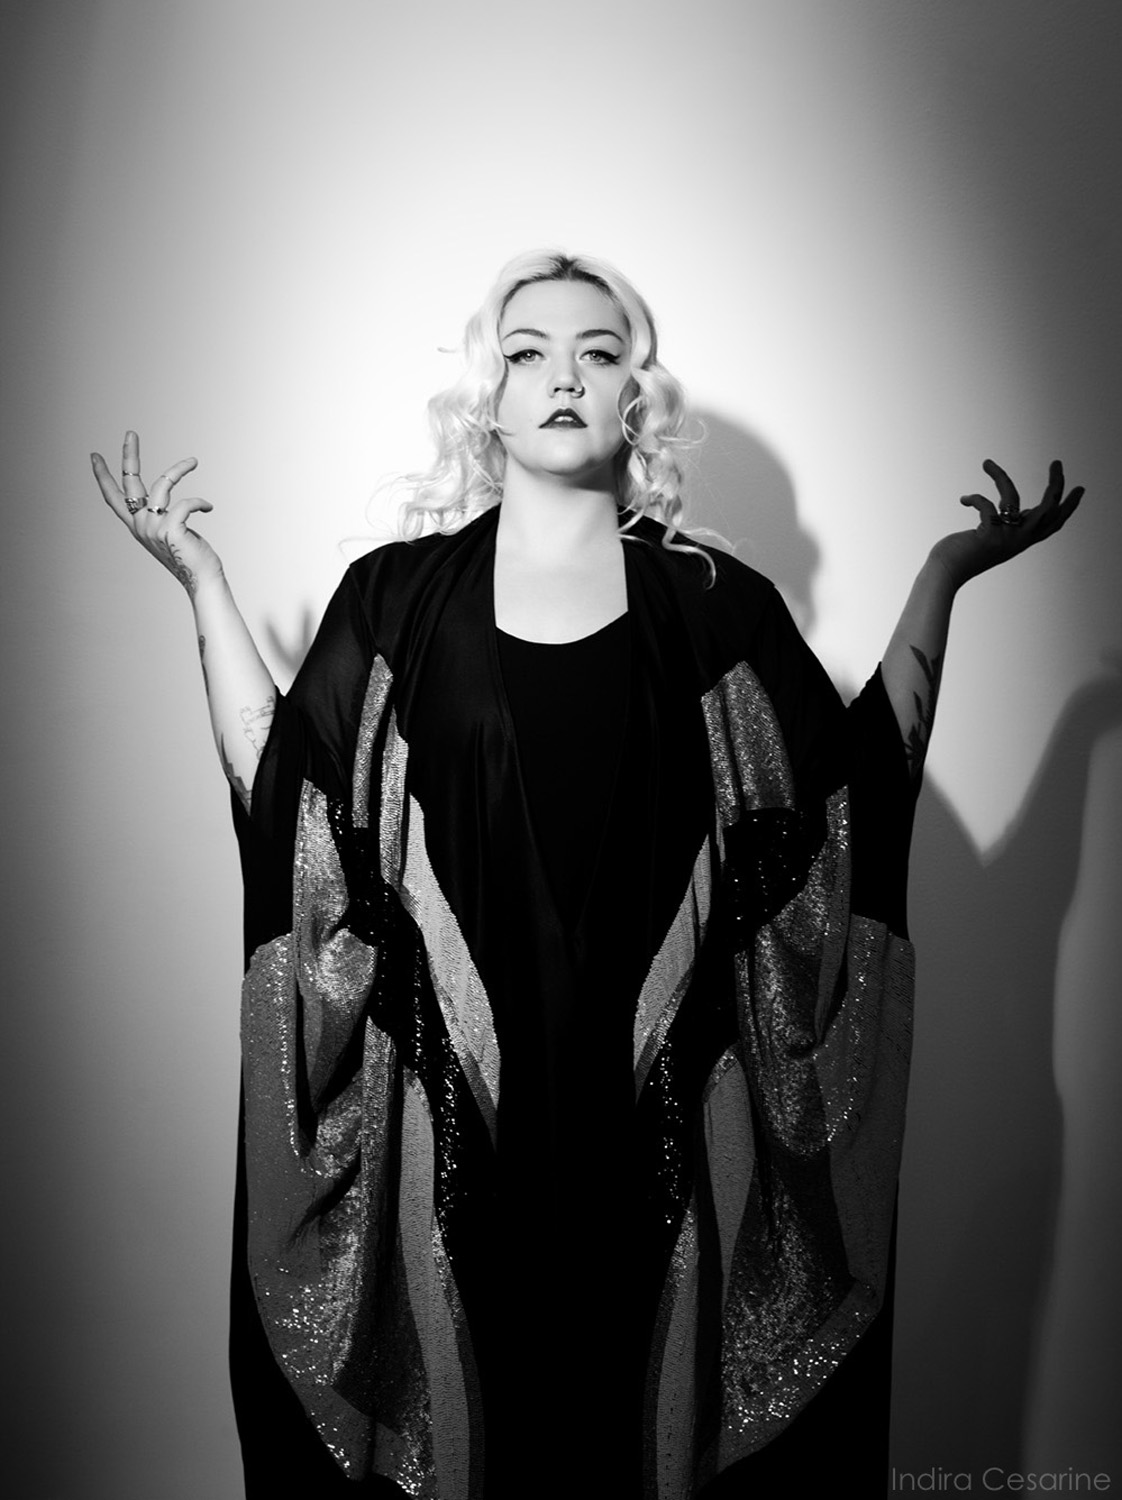 Elle-King-Photography-by-Indira-Cesarine-002x.jpg